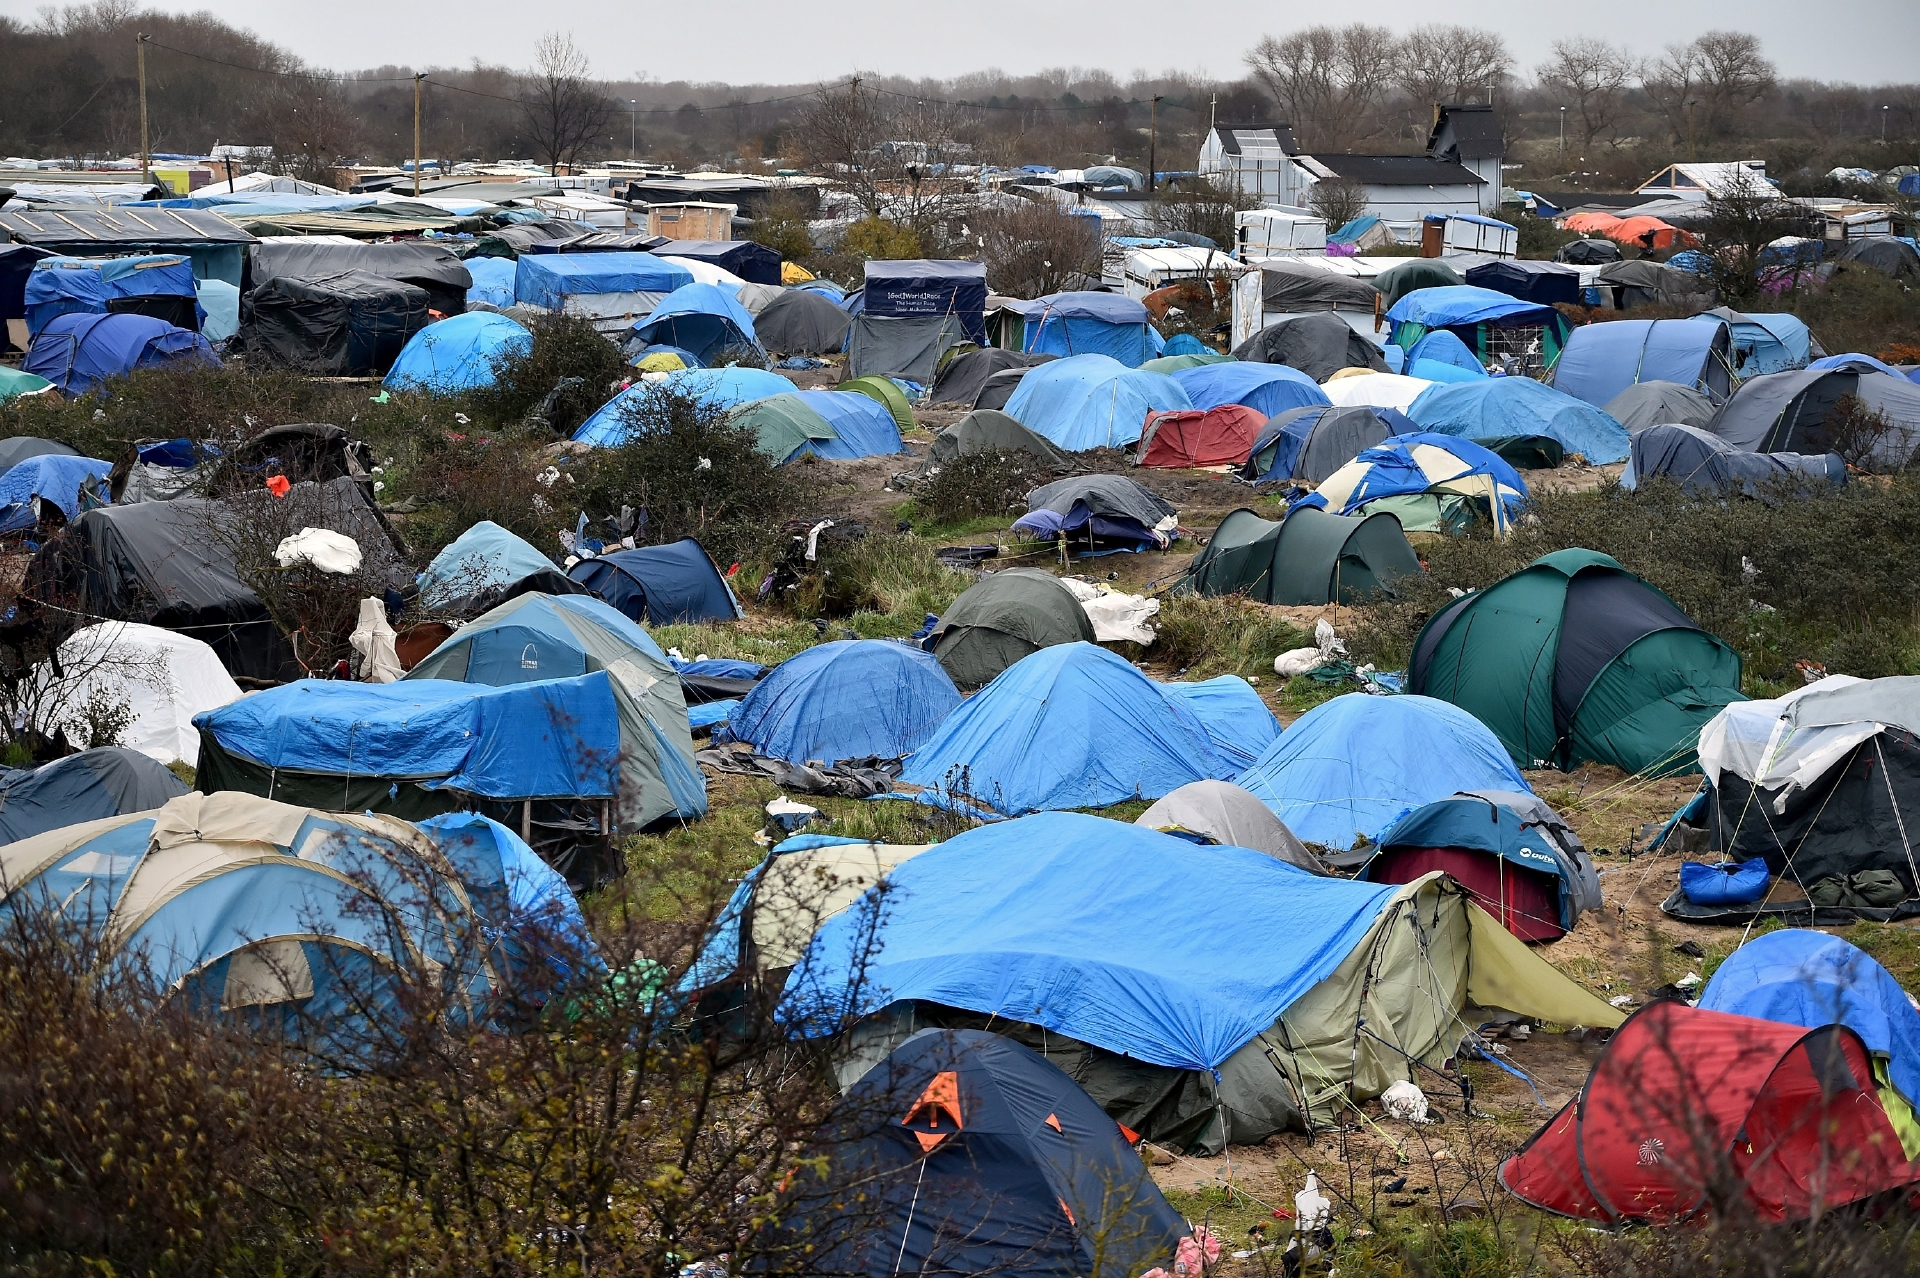 Migrant camps in Calais, France.